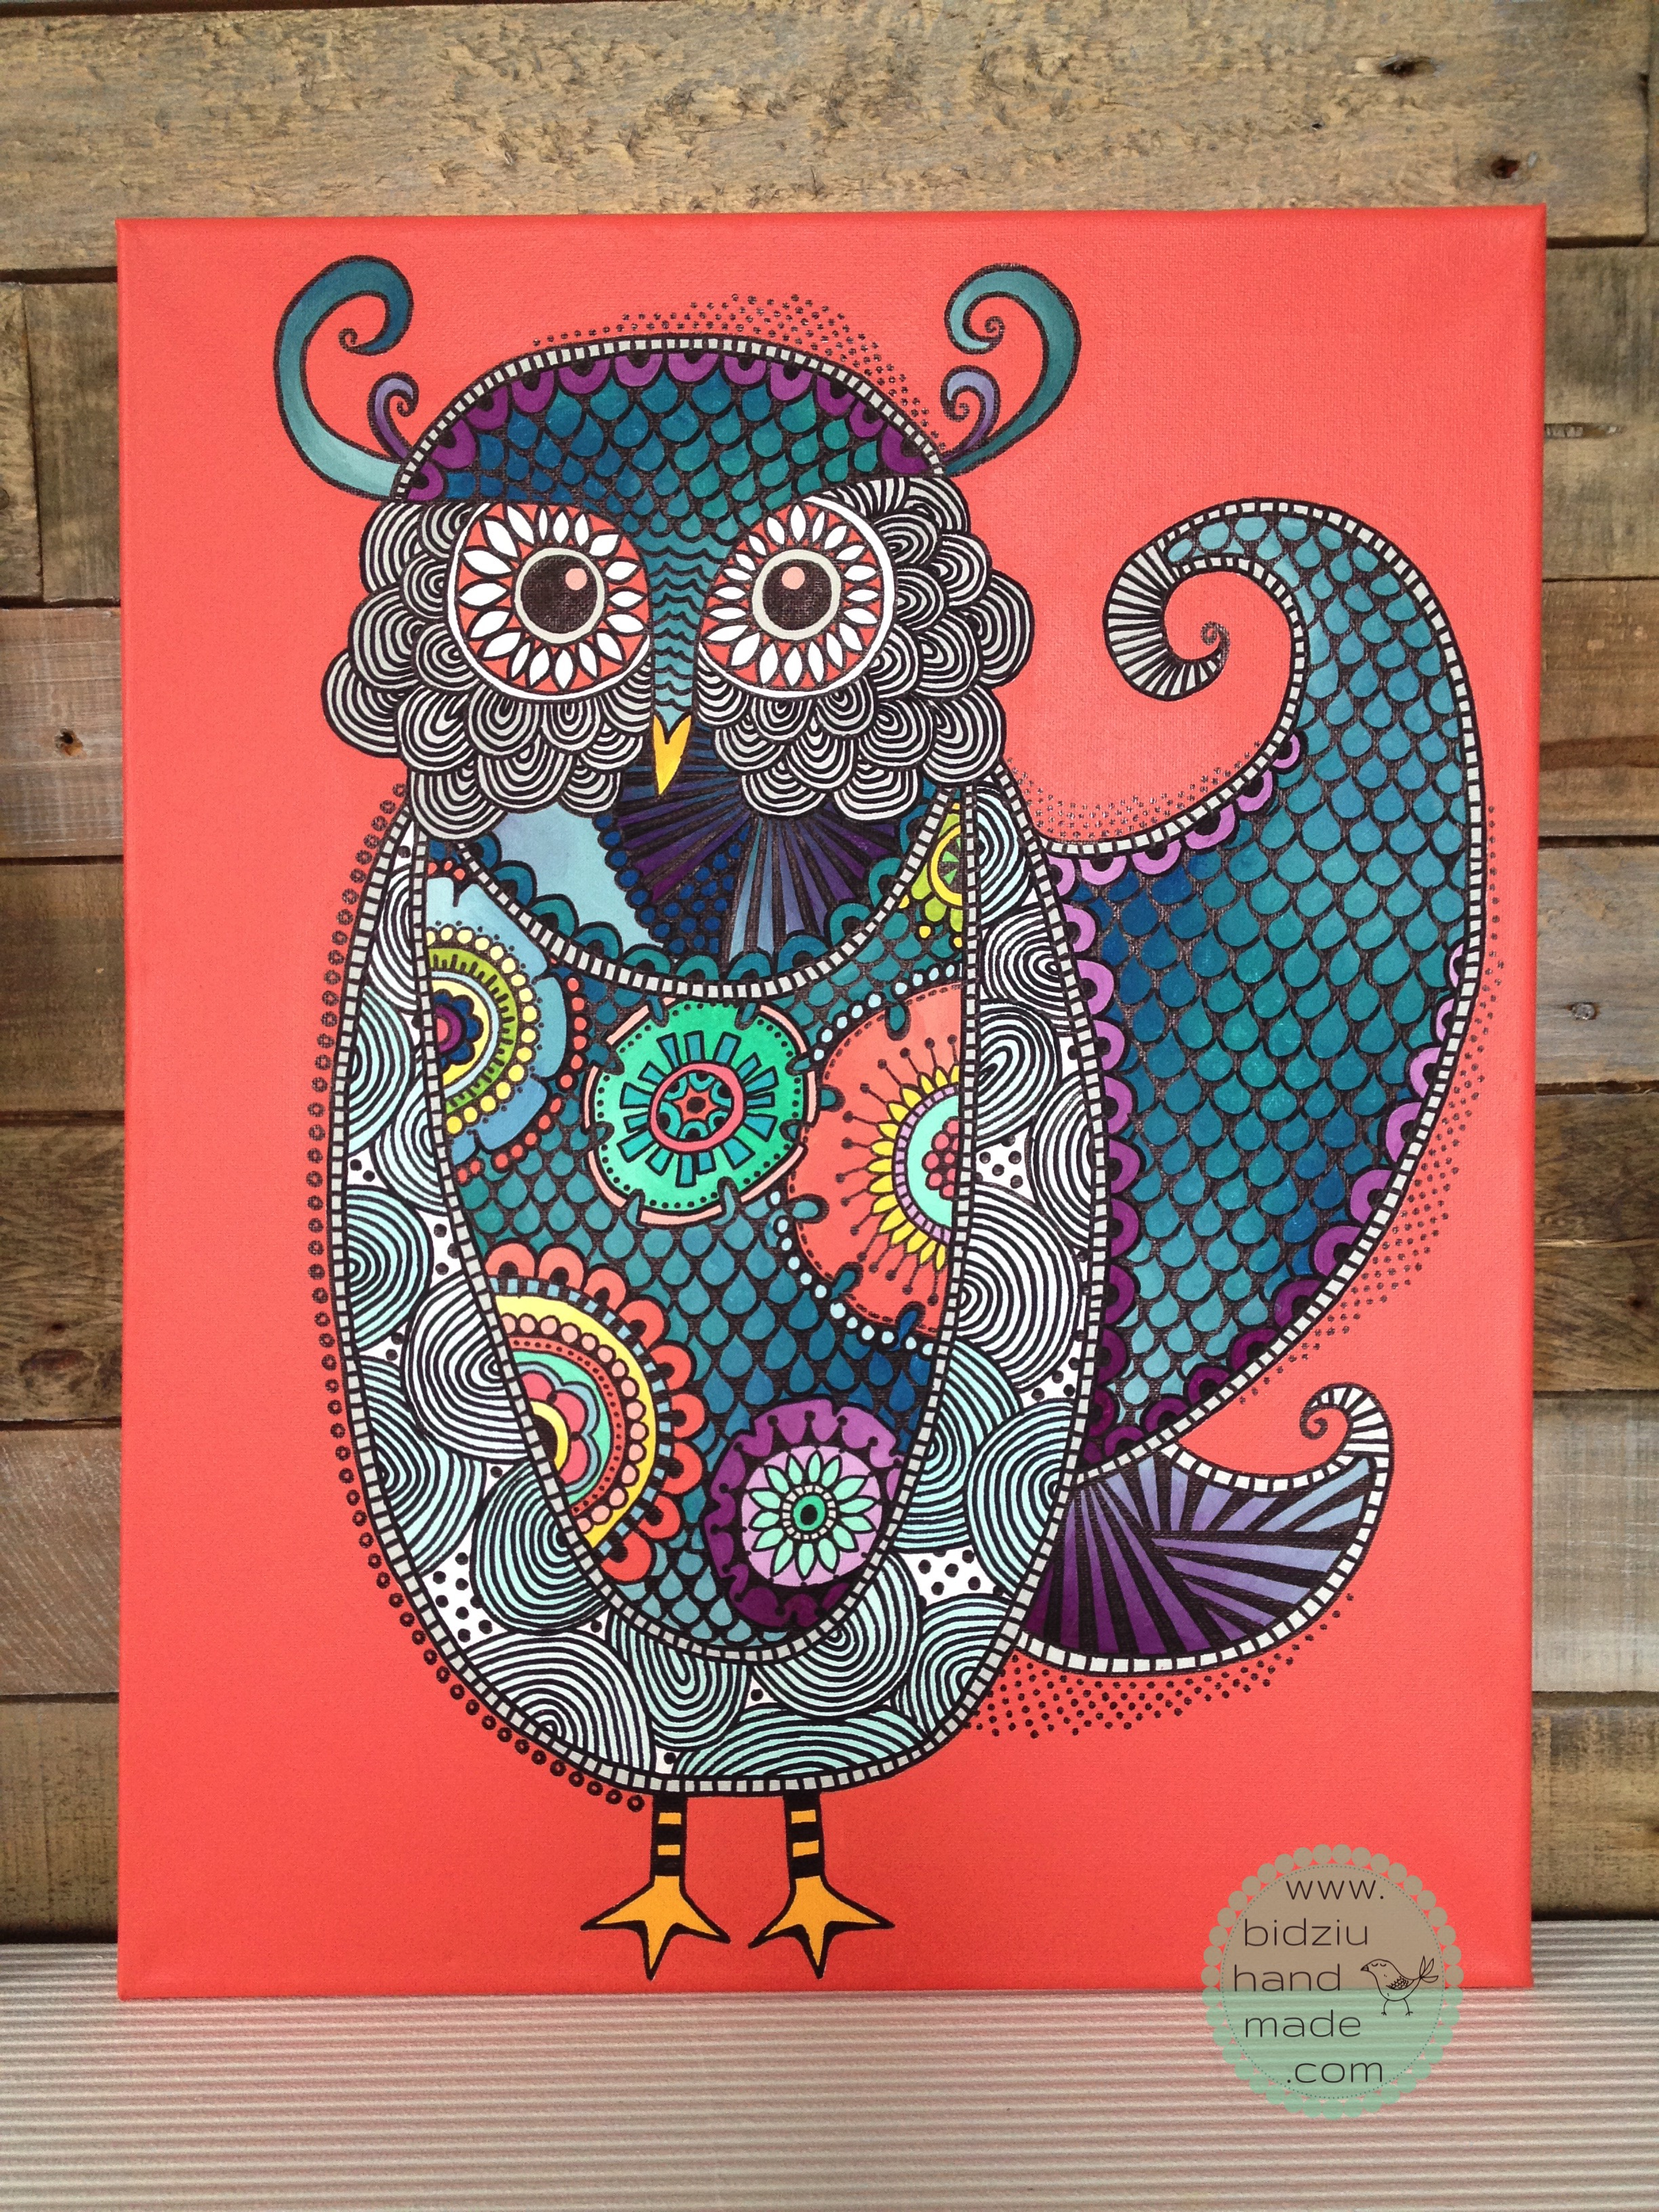 zentangle art, DIY zentangle art, zentangle drawing, colourful art, hand painted owl, DIY colourful art, colourful owl painting, owl painting, zentangle owl painting, handmade room decoration, hand painted room decoration, decoration for little girls room, coral painting, light blue painting, owl painting, DIY owl painting, bidziu handmade, bidziu hand made, unique art ideas